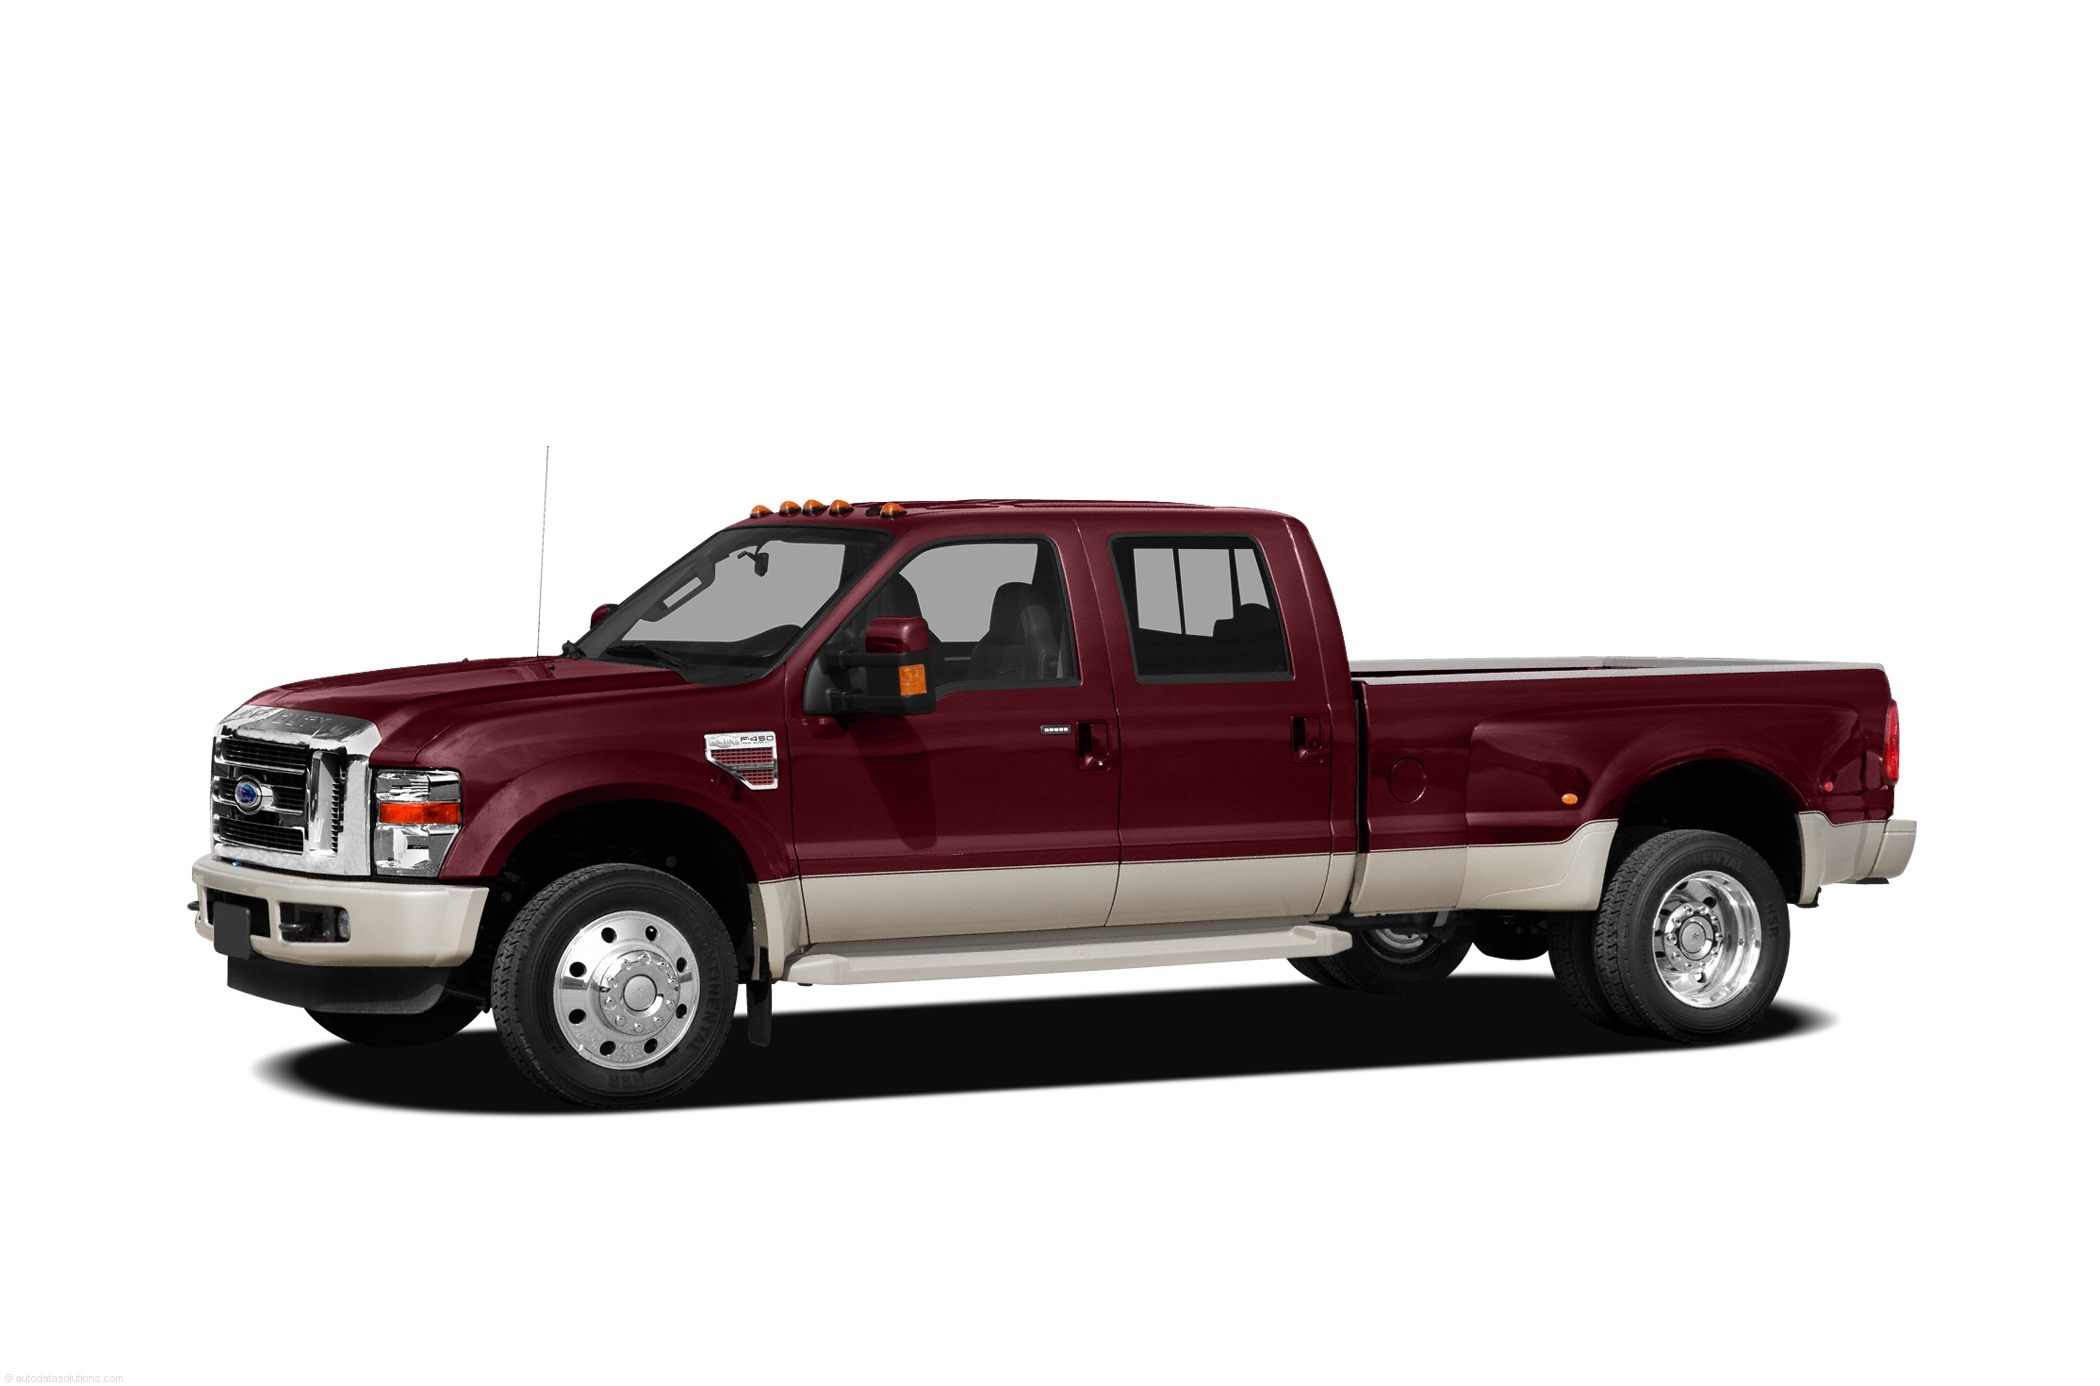 pricing msrp not available invoice price not available internet 2014 chevy silverado invoice price